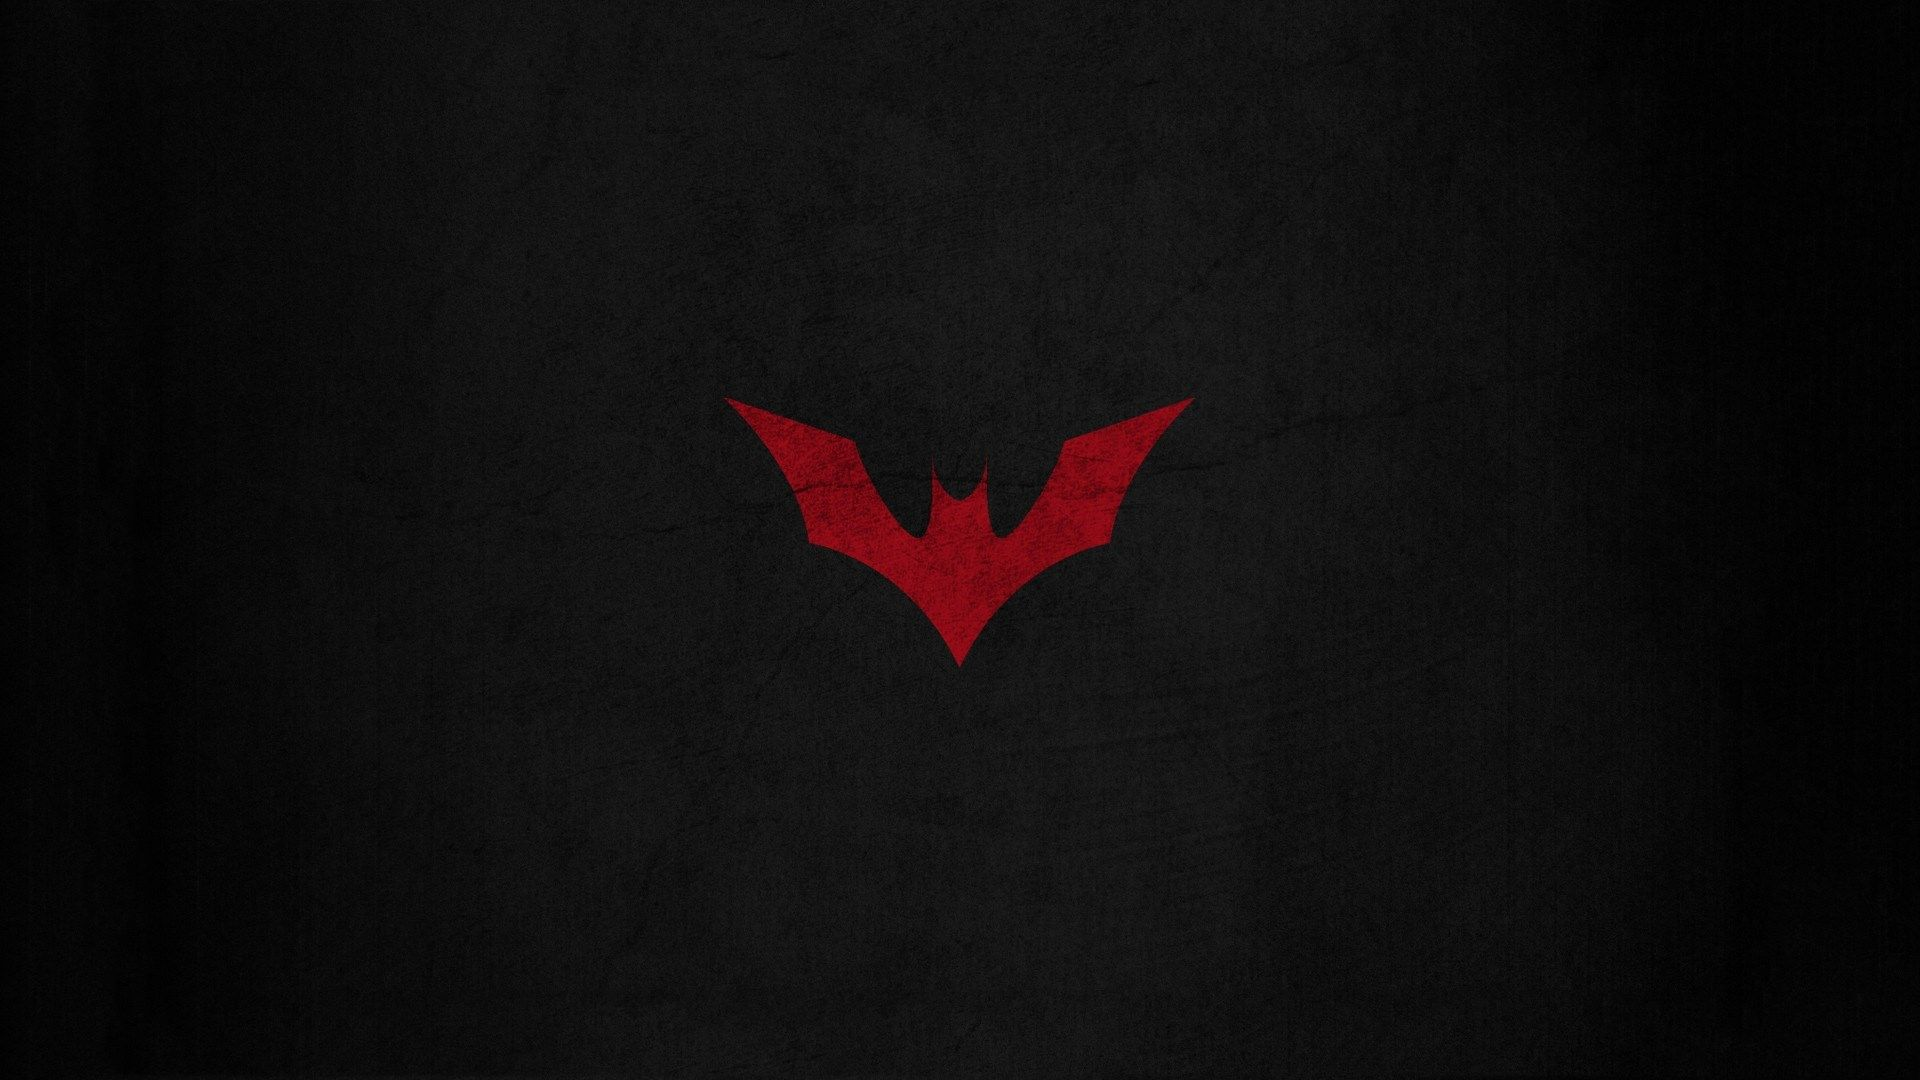 Batman Beyond Image Widescreen Retina Imac Dyer Black 1920x1080